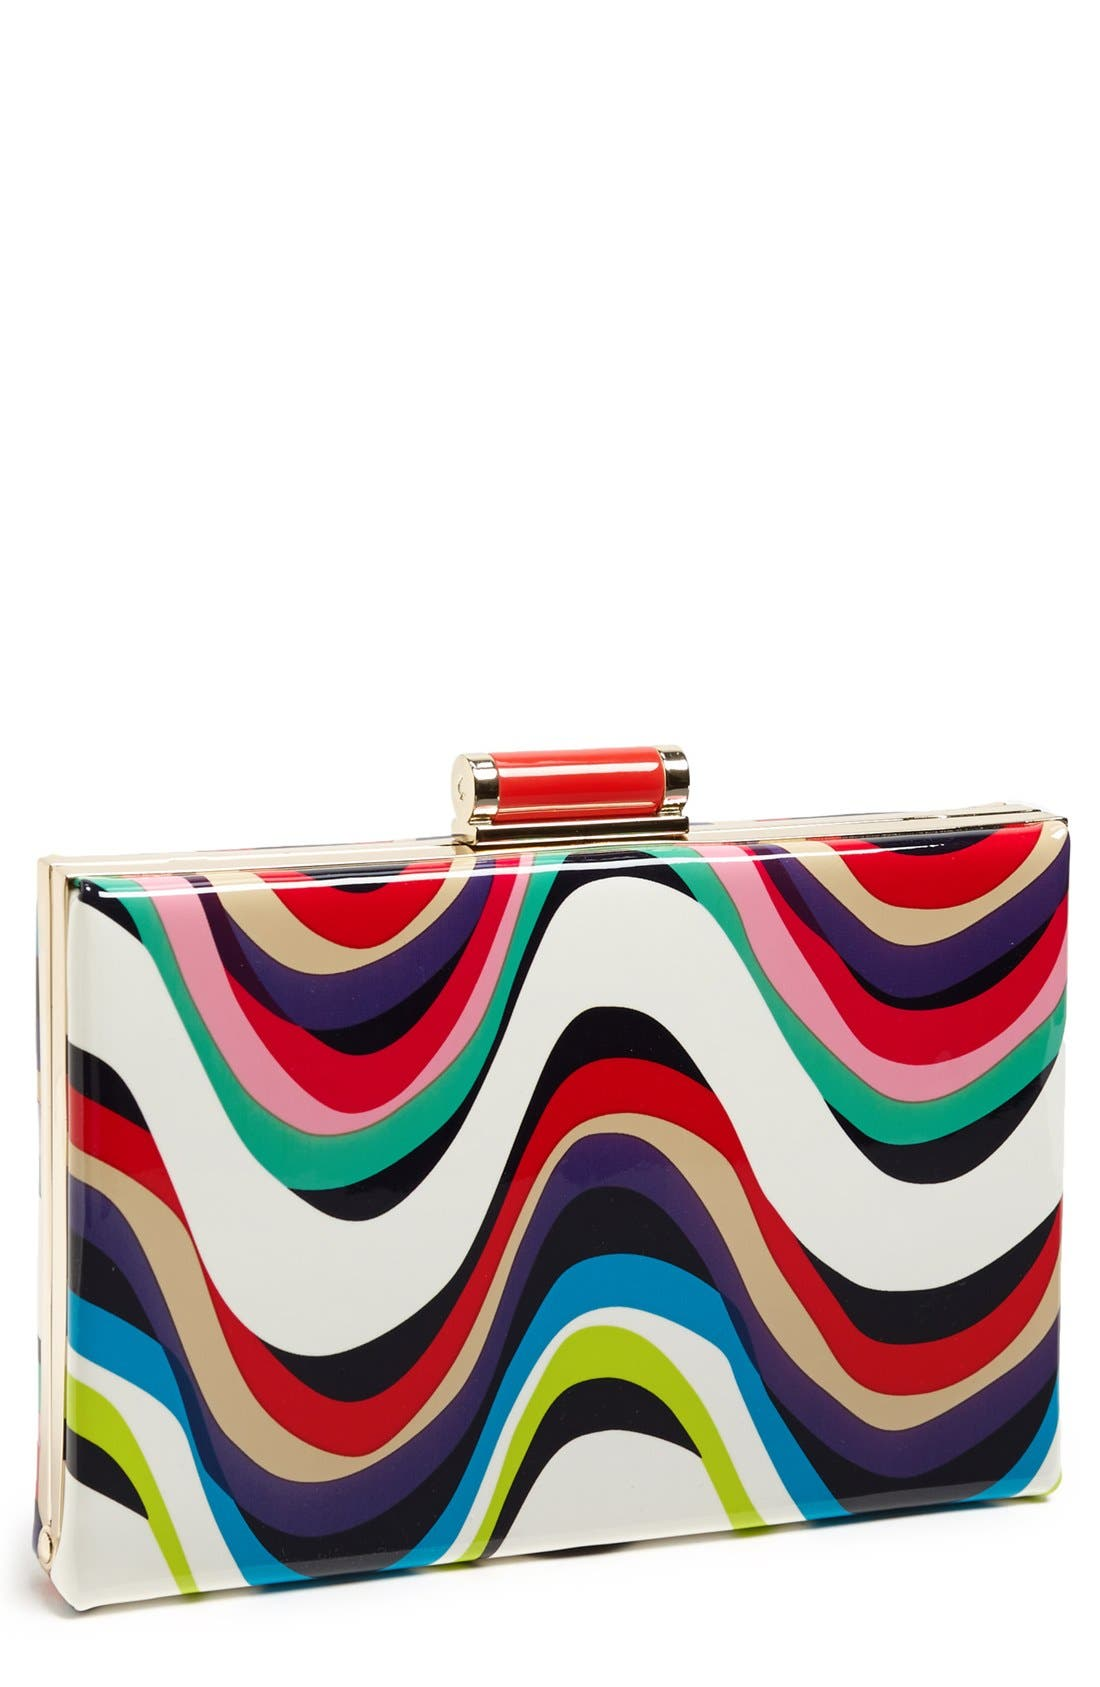 Alternate Image 1 Selected - kate spade new york 'miss penny's - emanuelle' frame clutch